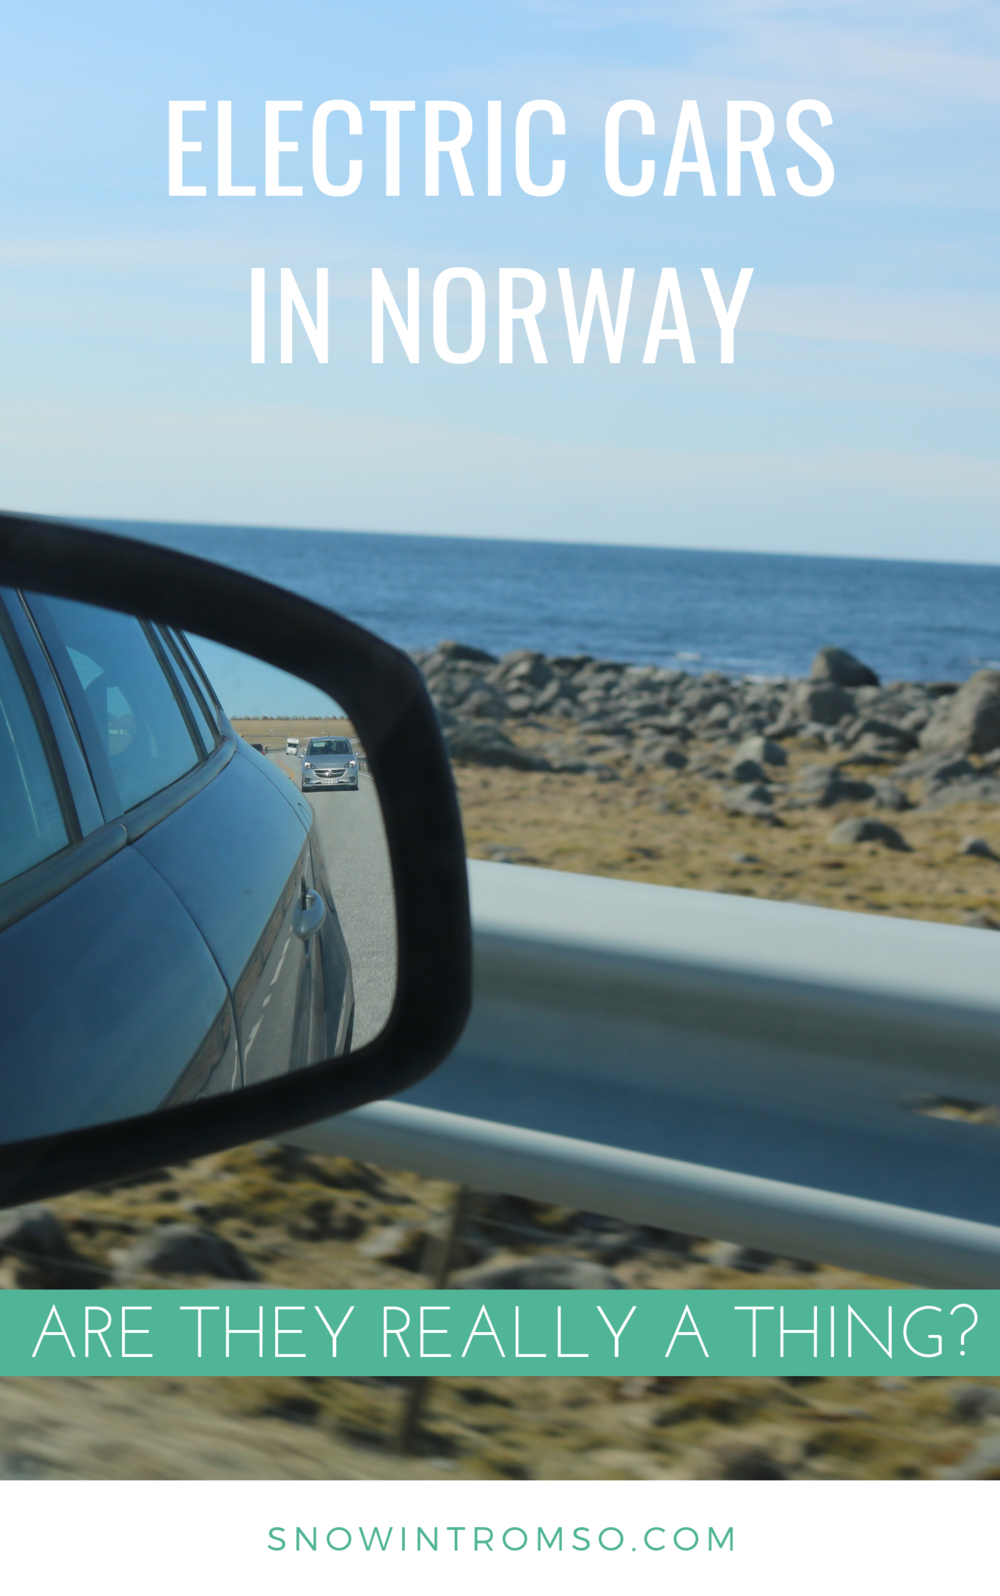 Are electric cars really a thing in Norway? Click through to find out!